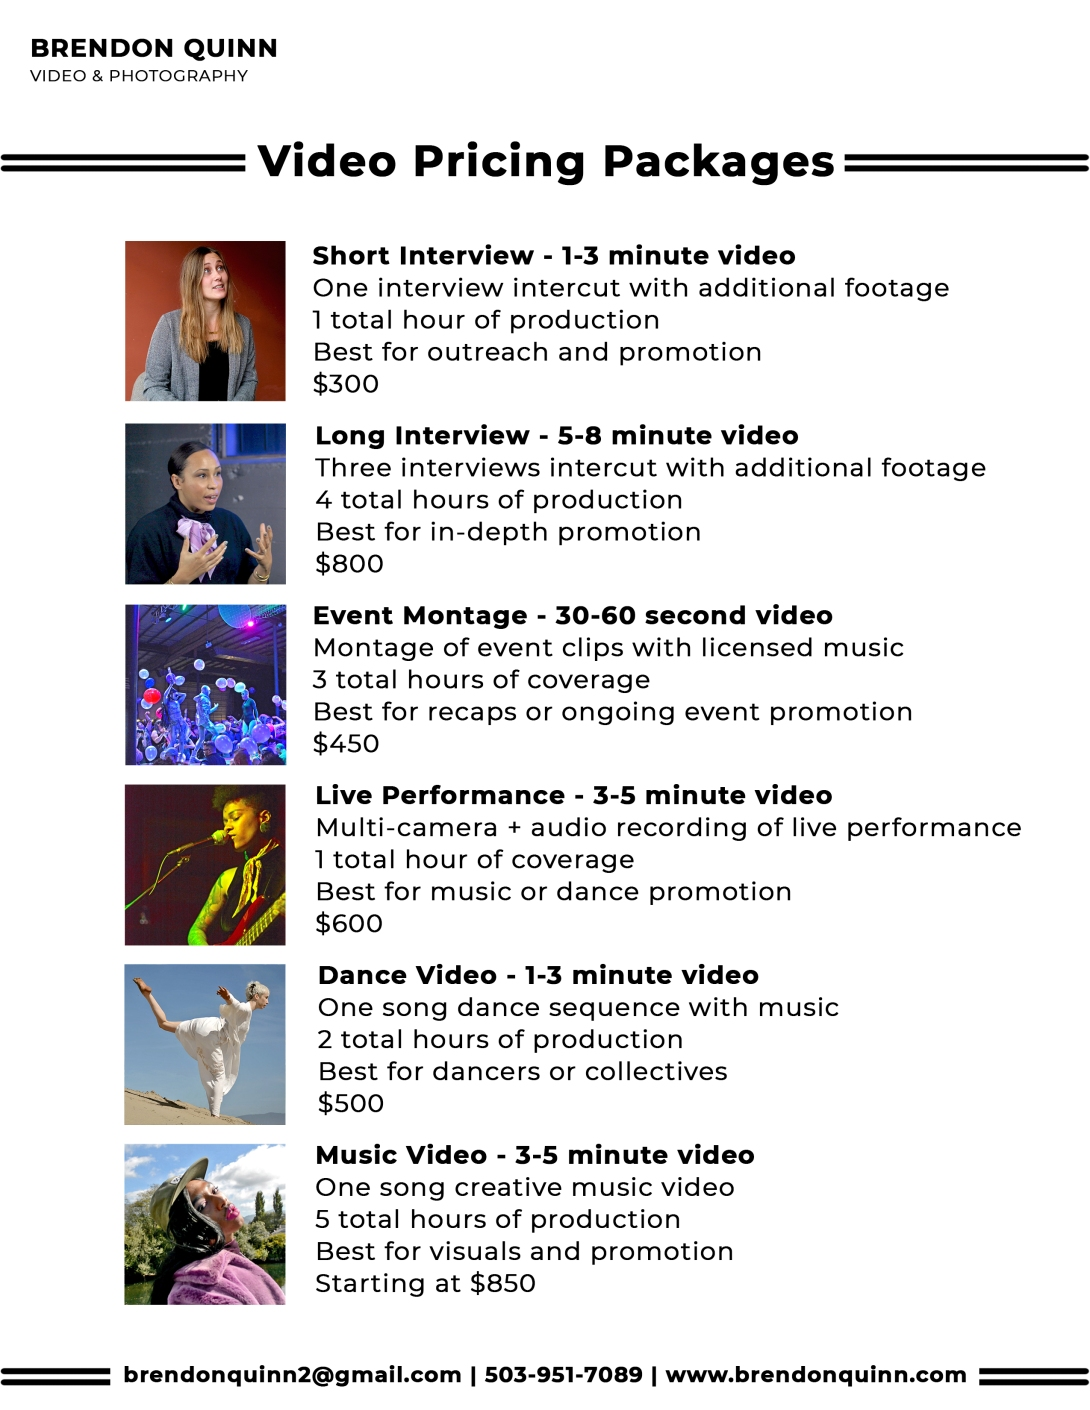 Video_Pricing